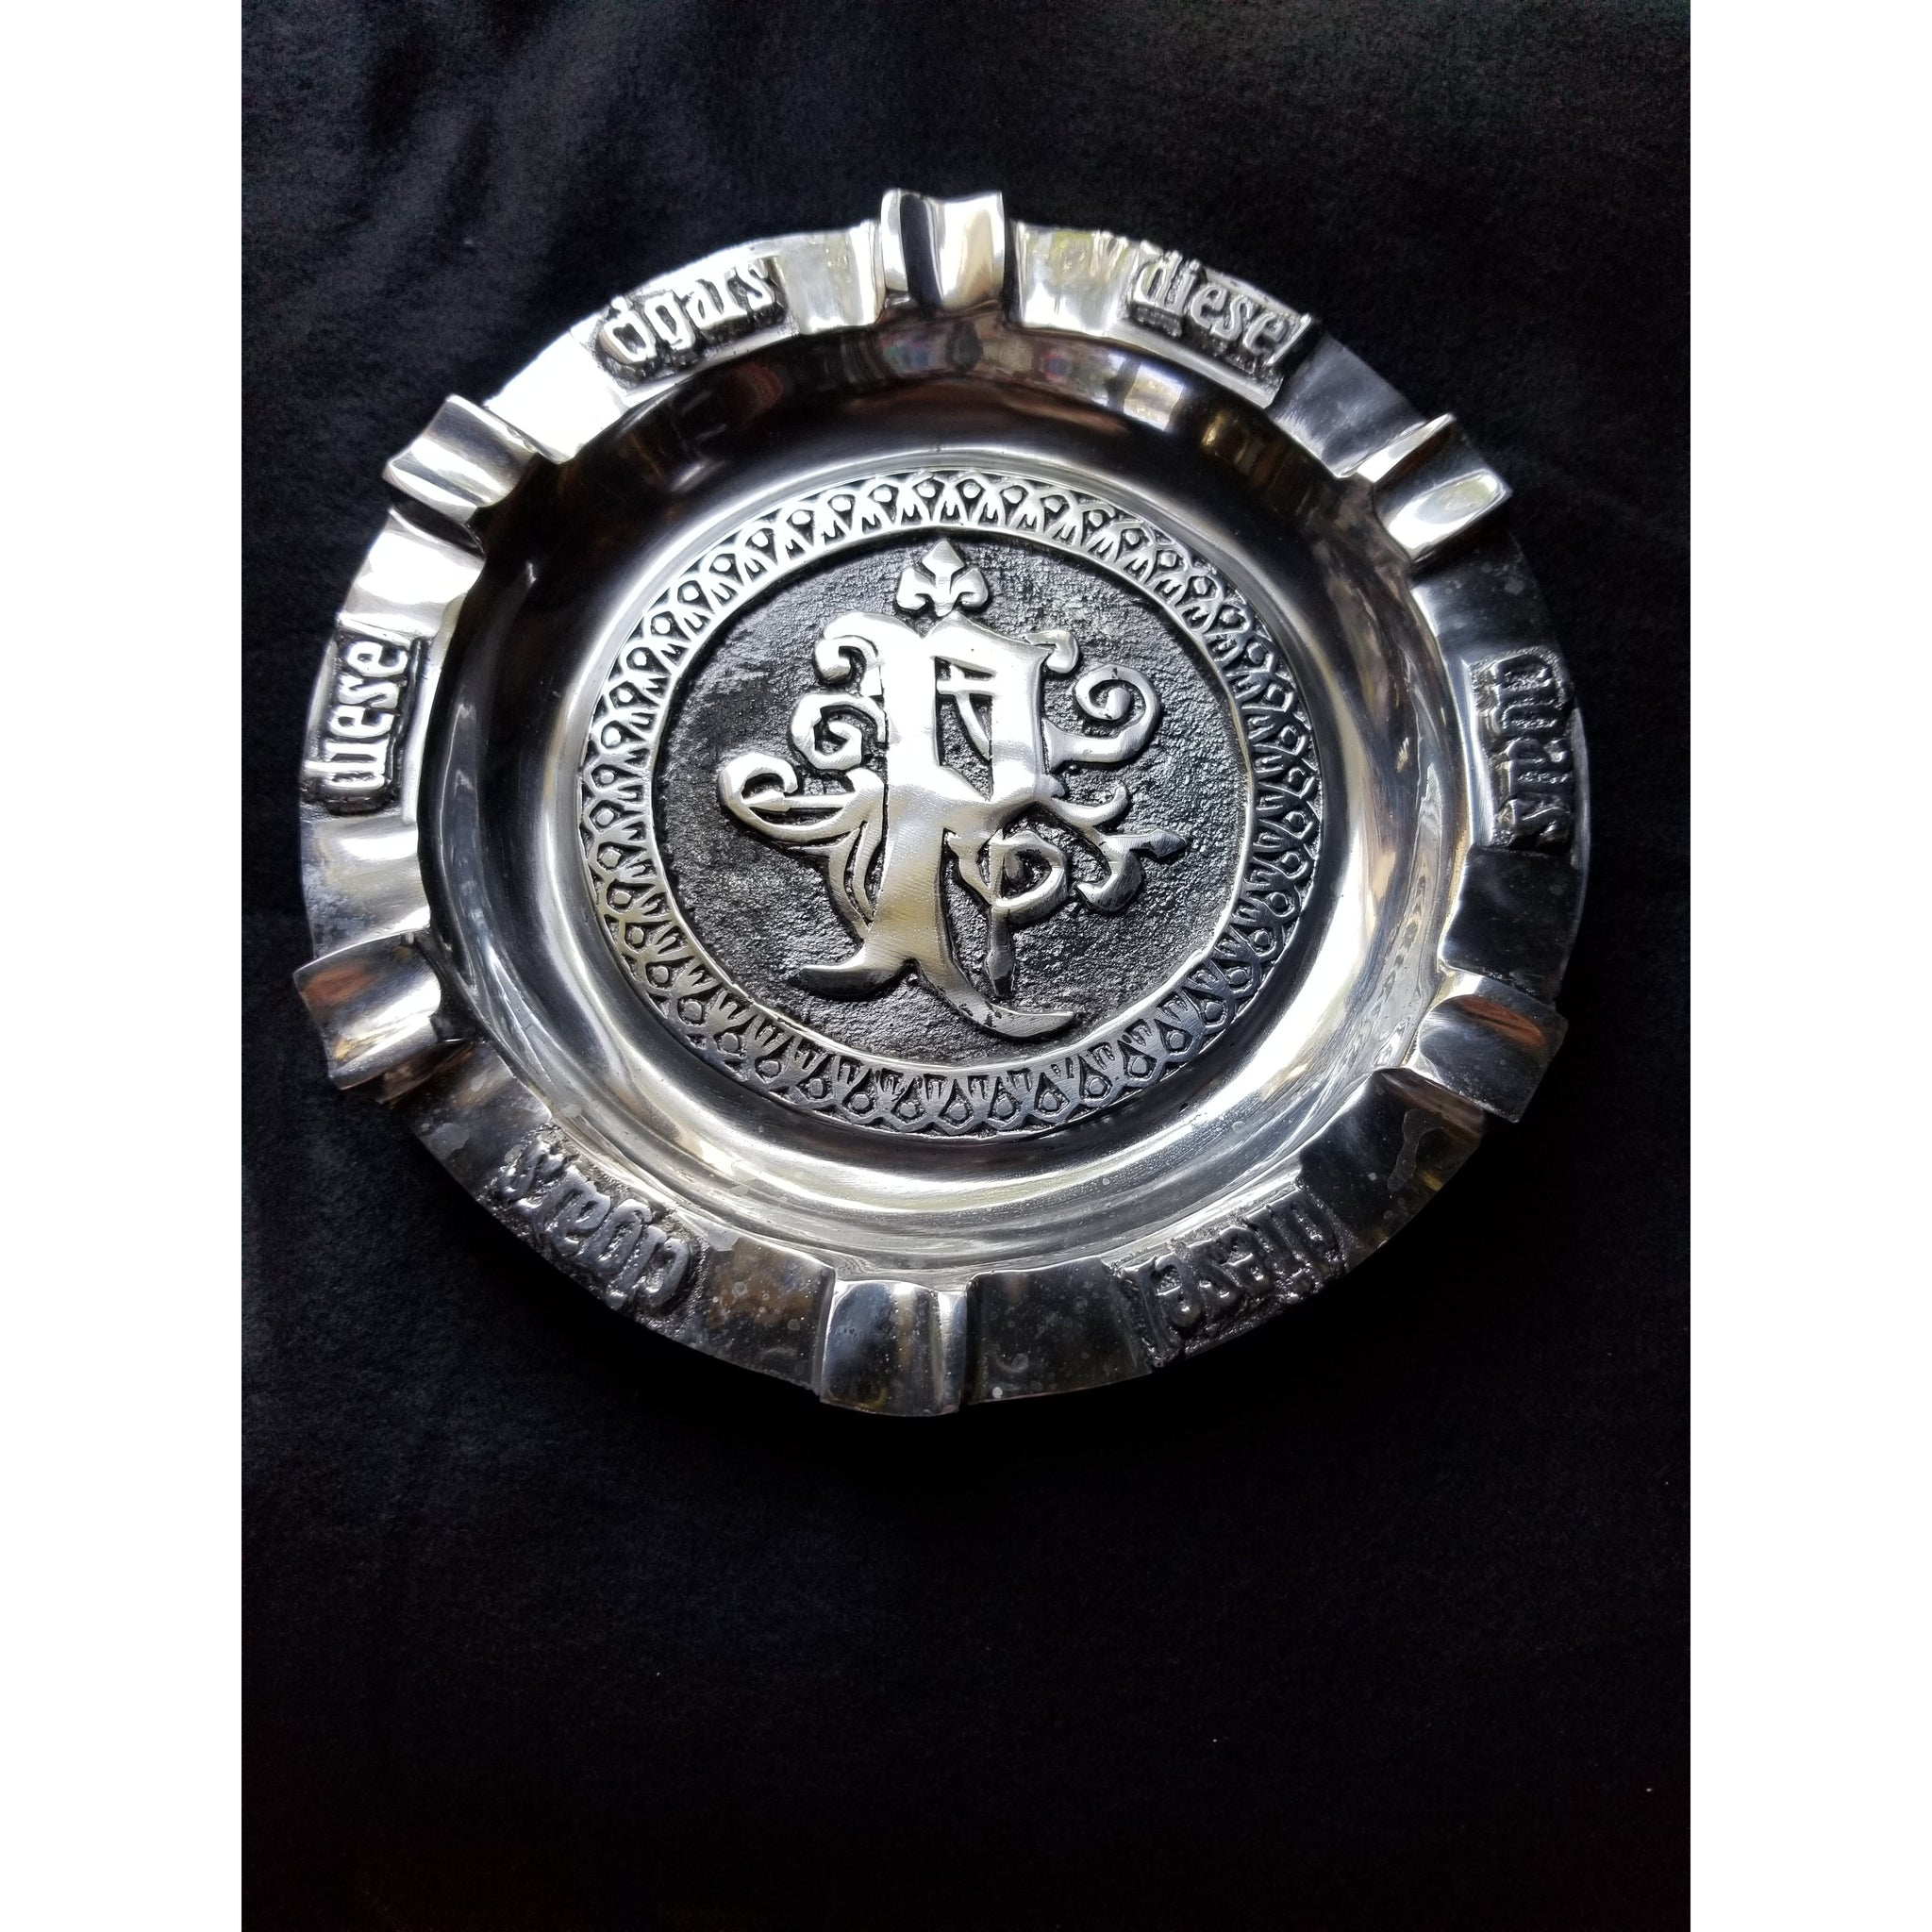 Pewter ashtray